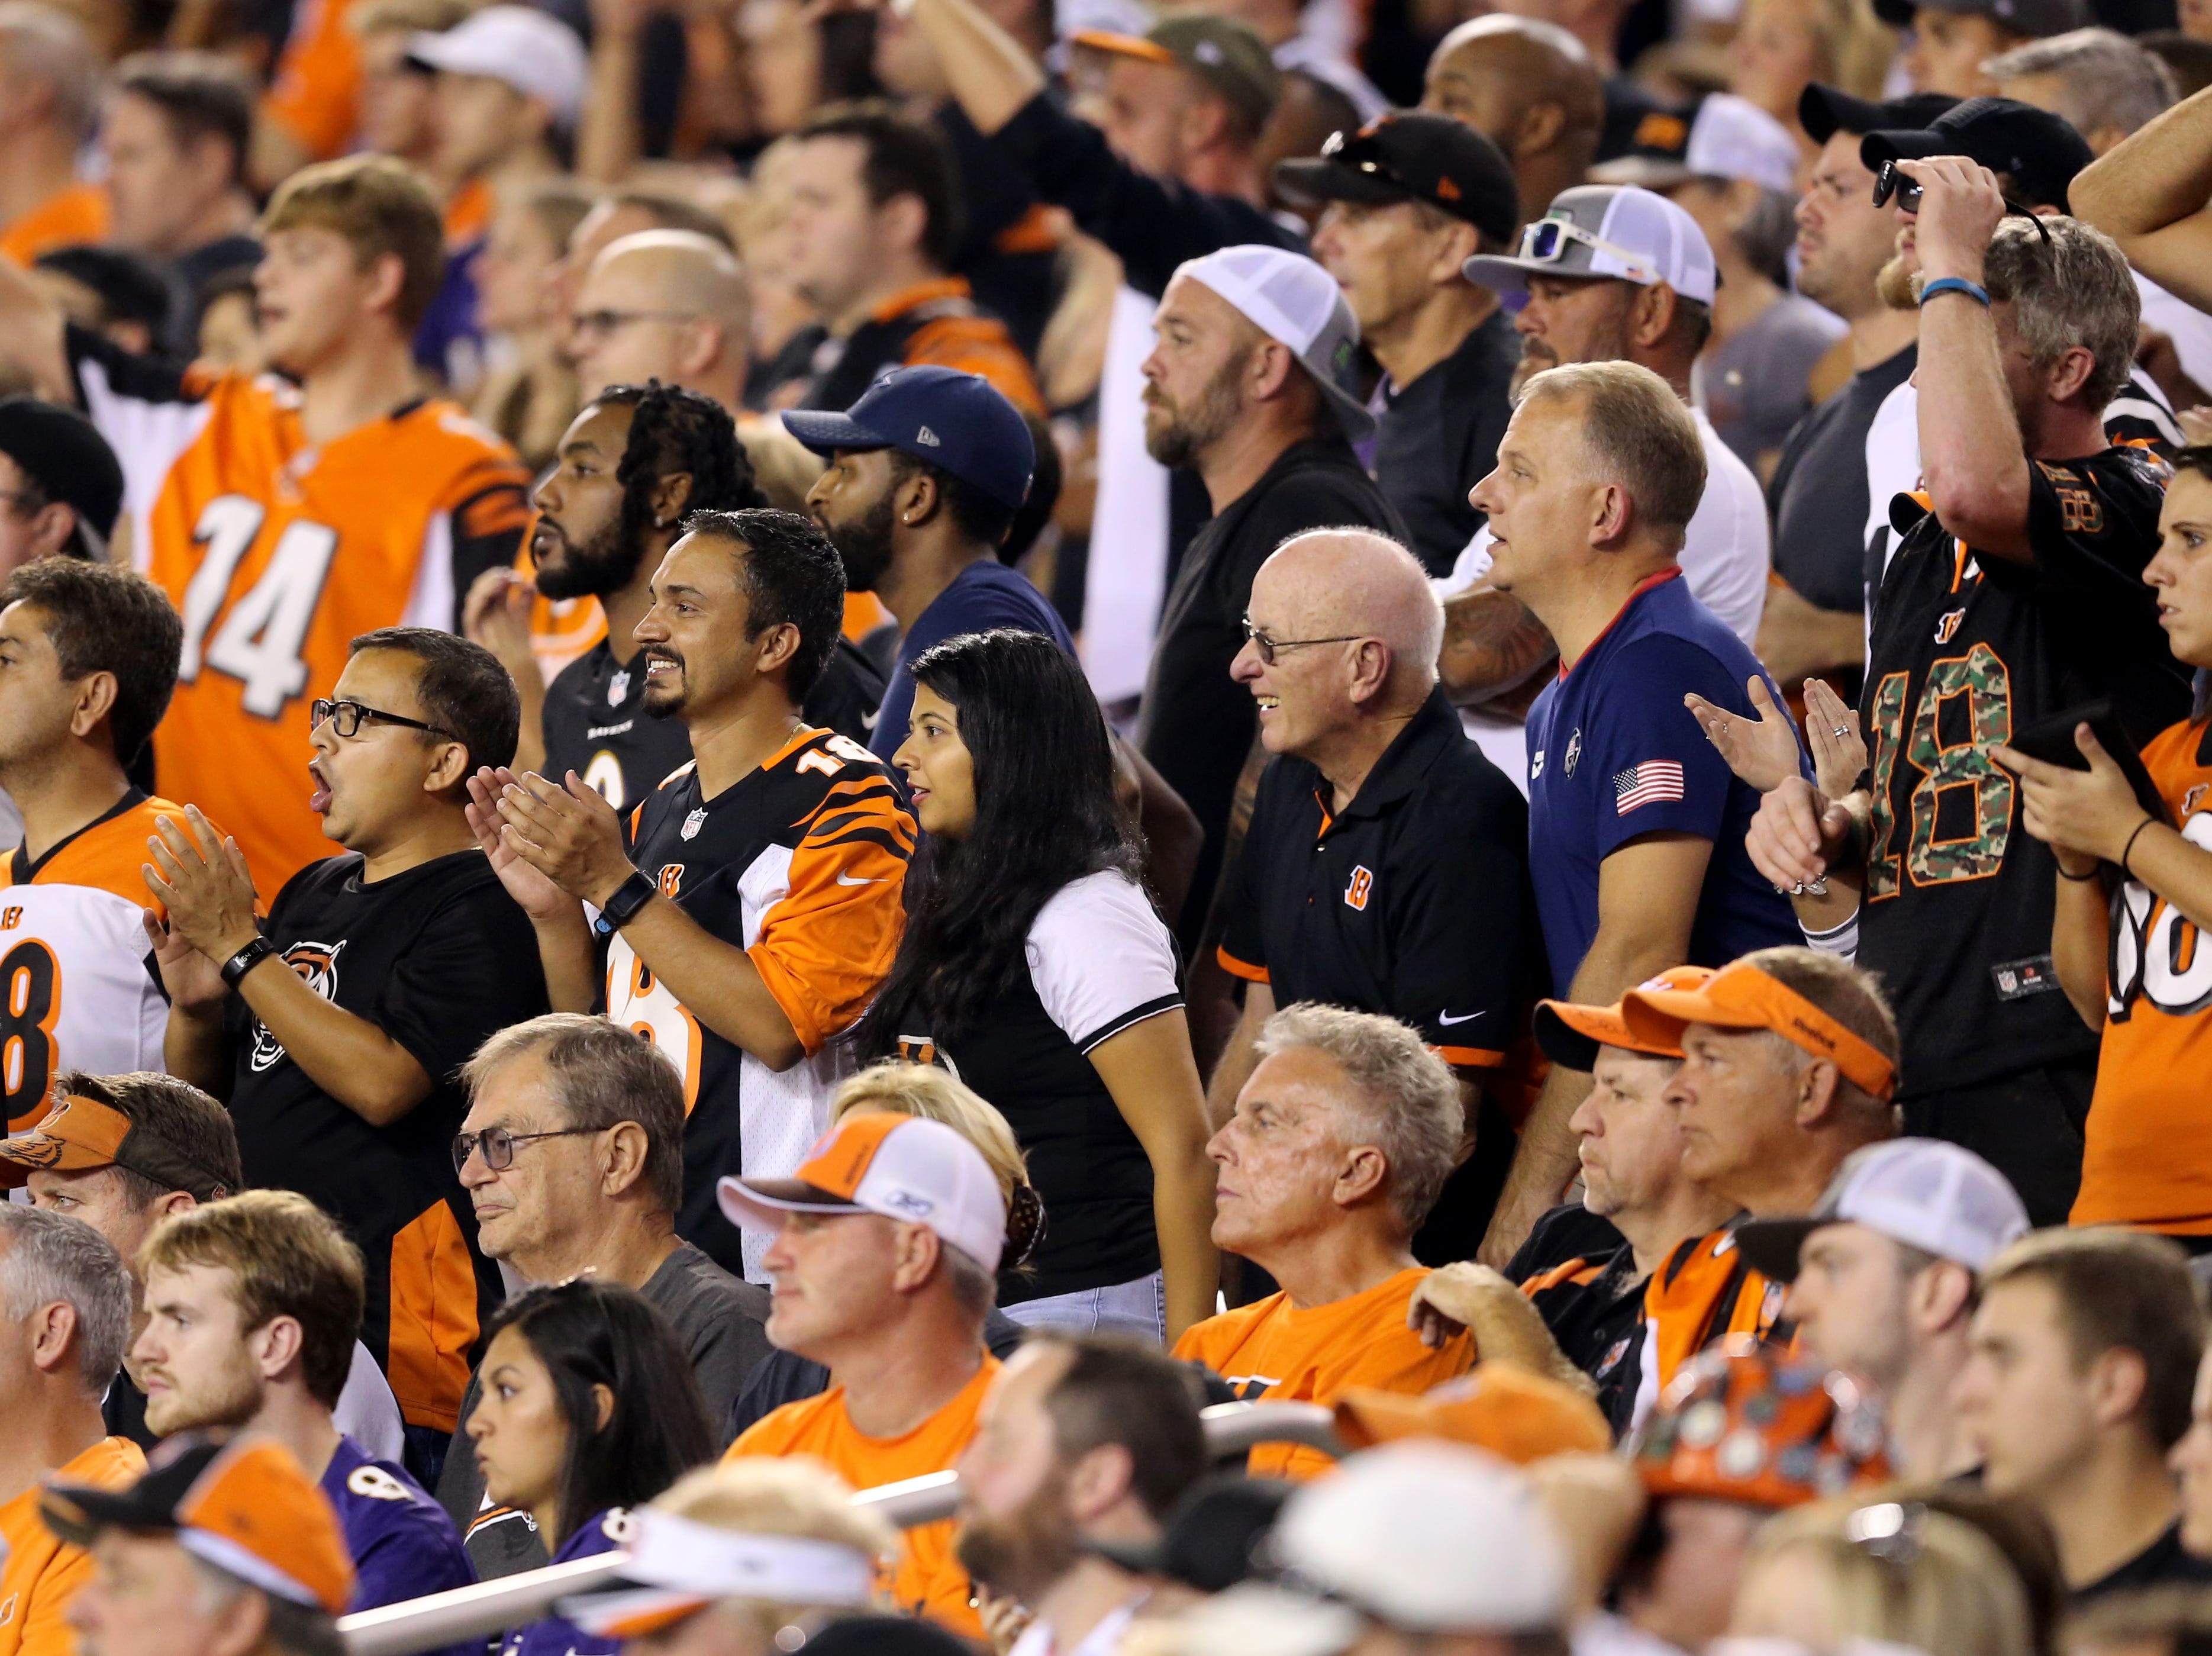 Cincinnati Bengals fans cheer on the team in the fourth quarter during the Week 2 NFL football game between the Baltimore Ravens and the Cincinnati Bengals, Friday, Sept. 14, 2018, Paul Brown Stadium in Cincinnati. Cincinnati won 34-23.